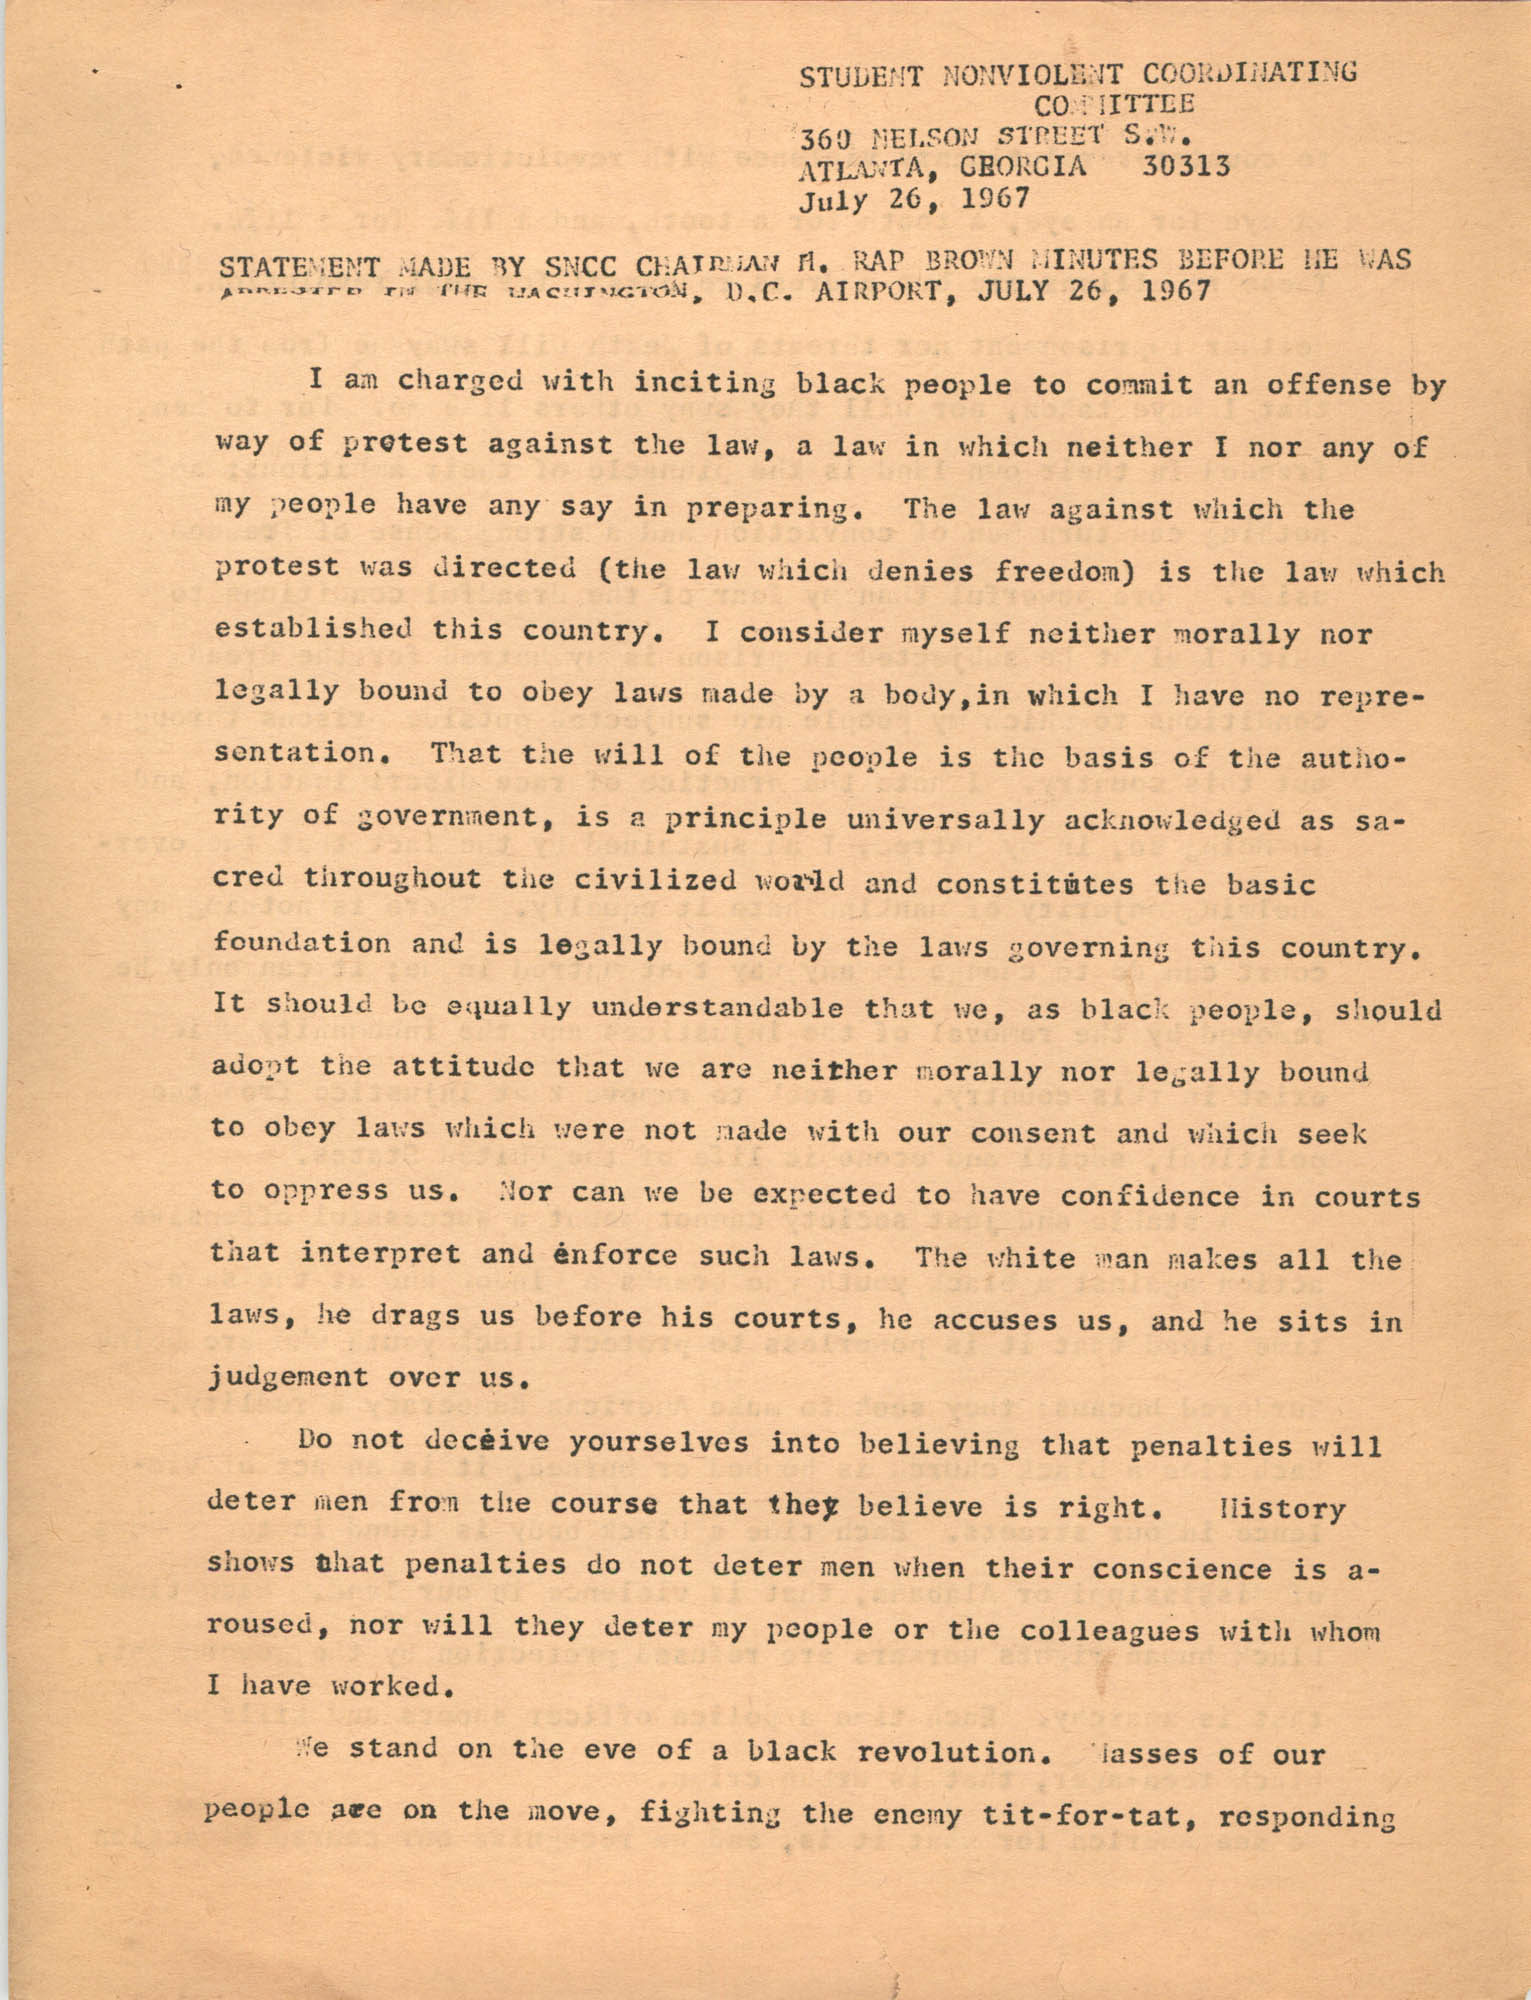 Student Nonviolent Coordinating Committee Press Release, June 26, 1967